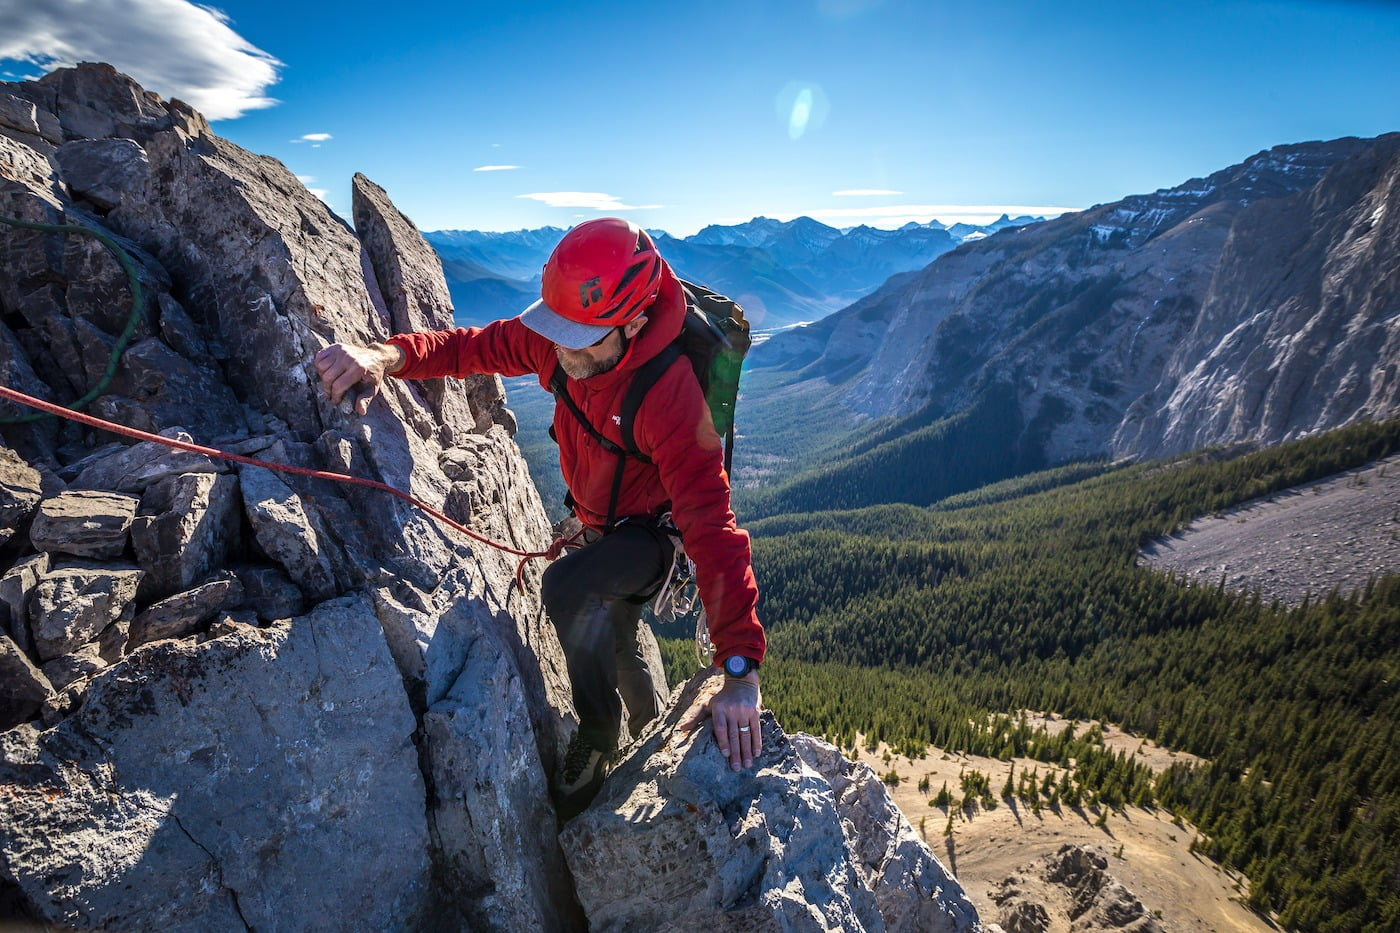 An ACMG Rock Climber High Above A Valley With Mountains In The Background